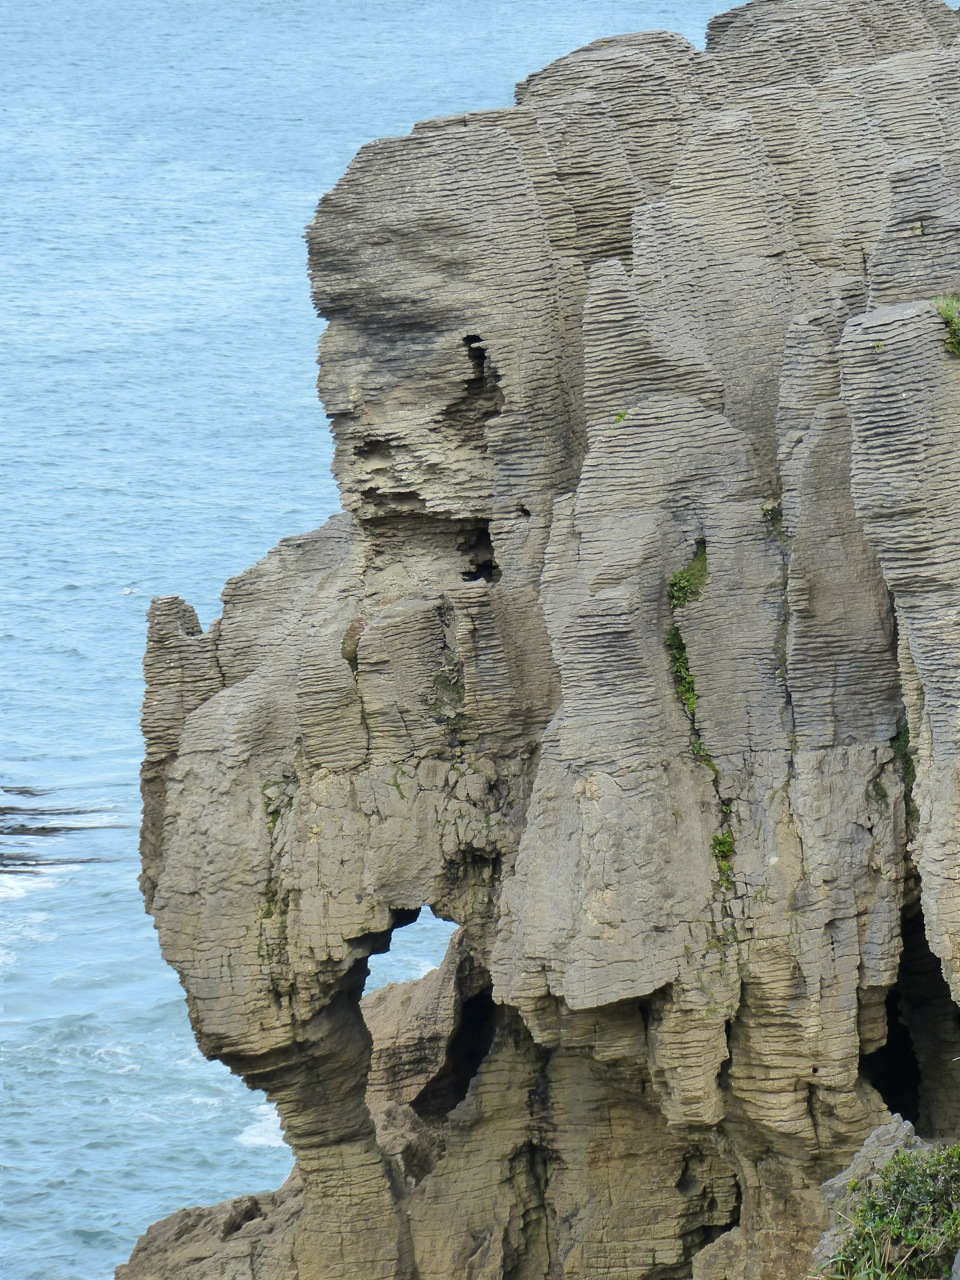 The Pancake Rocks.  Kind of reminds me of the stone men from Easter Island.